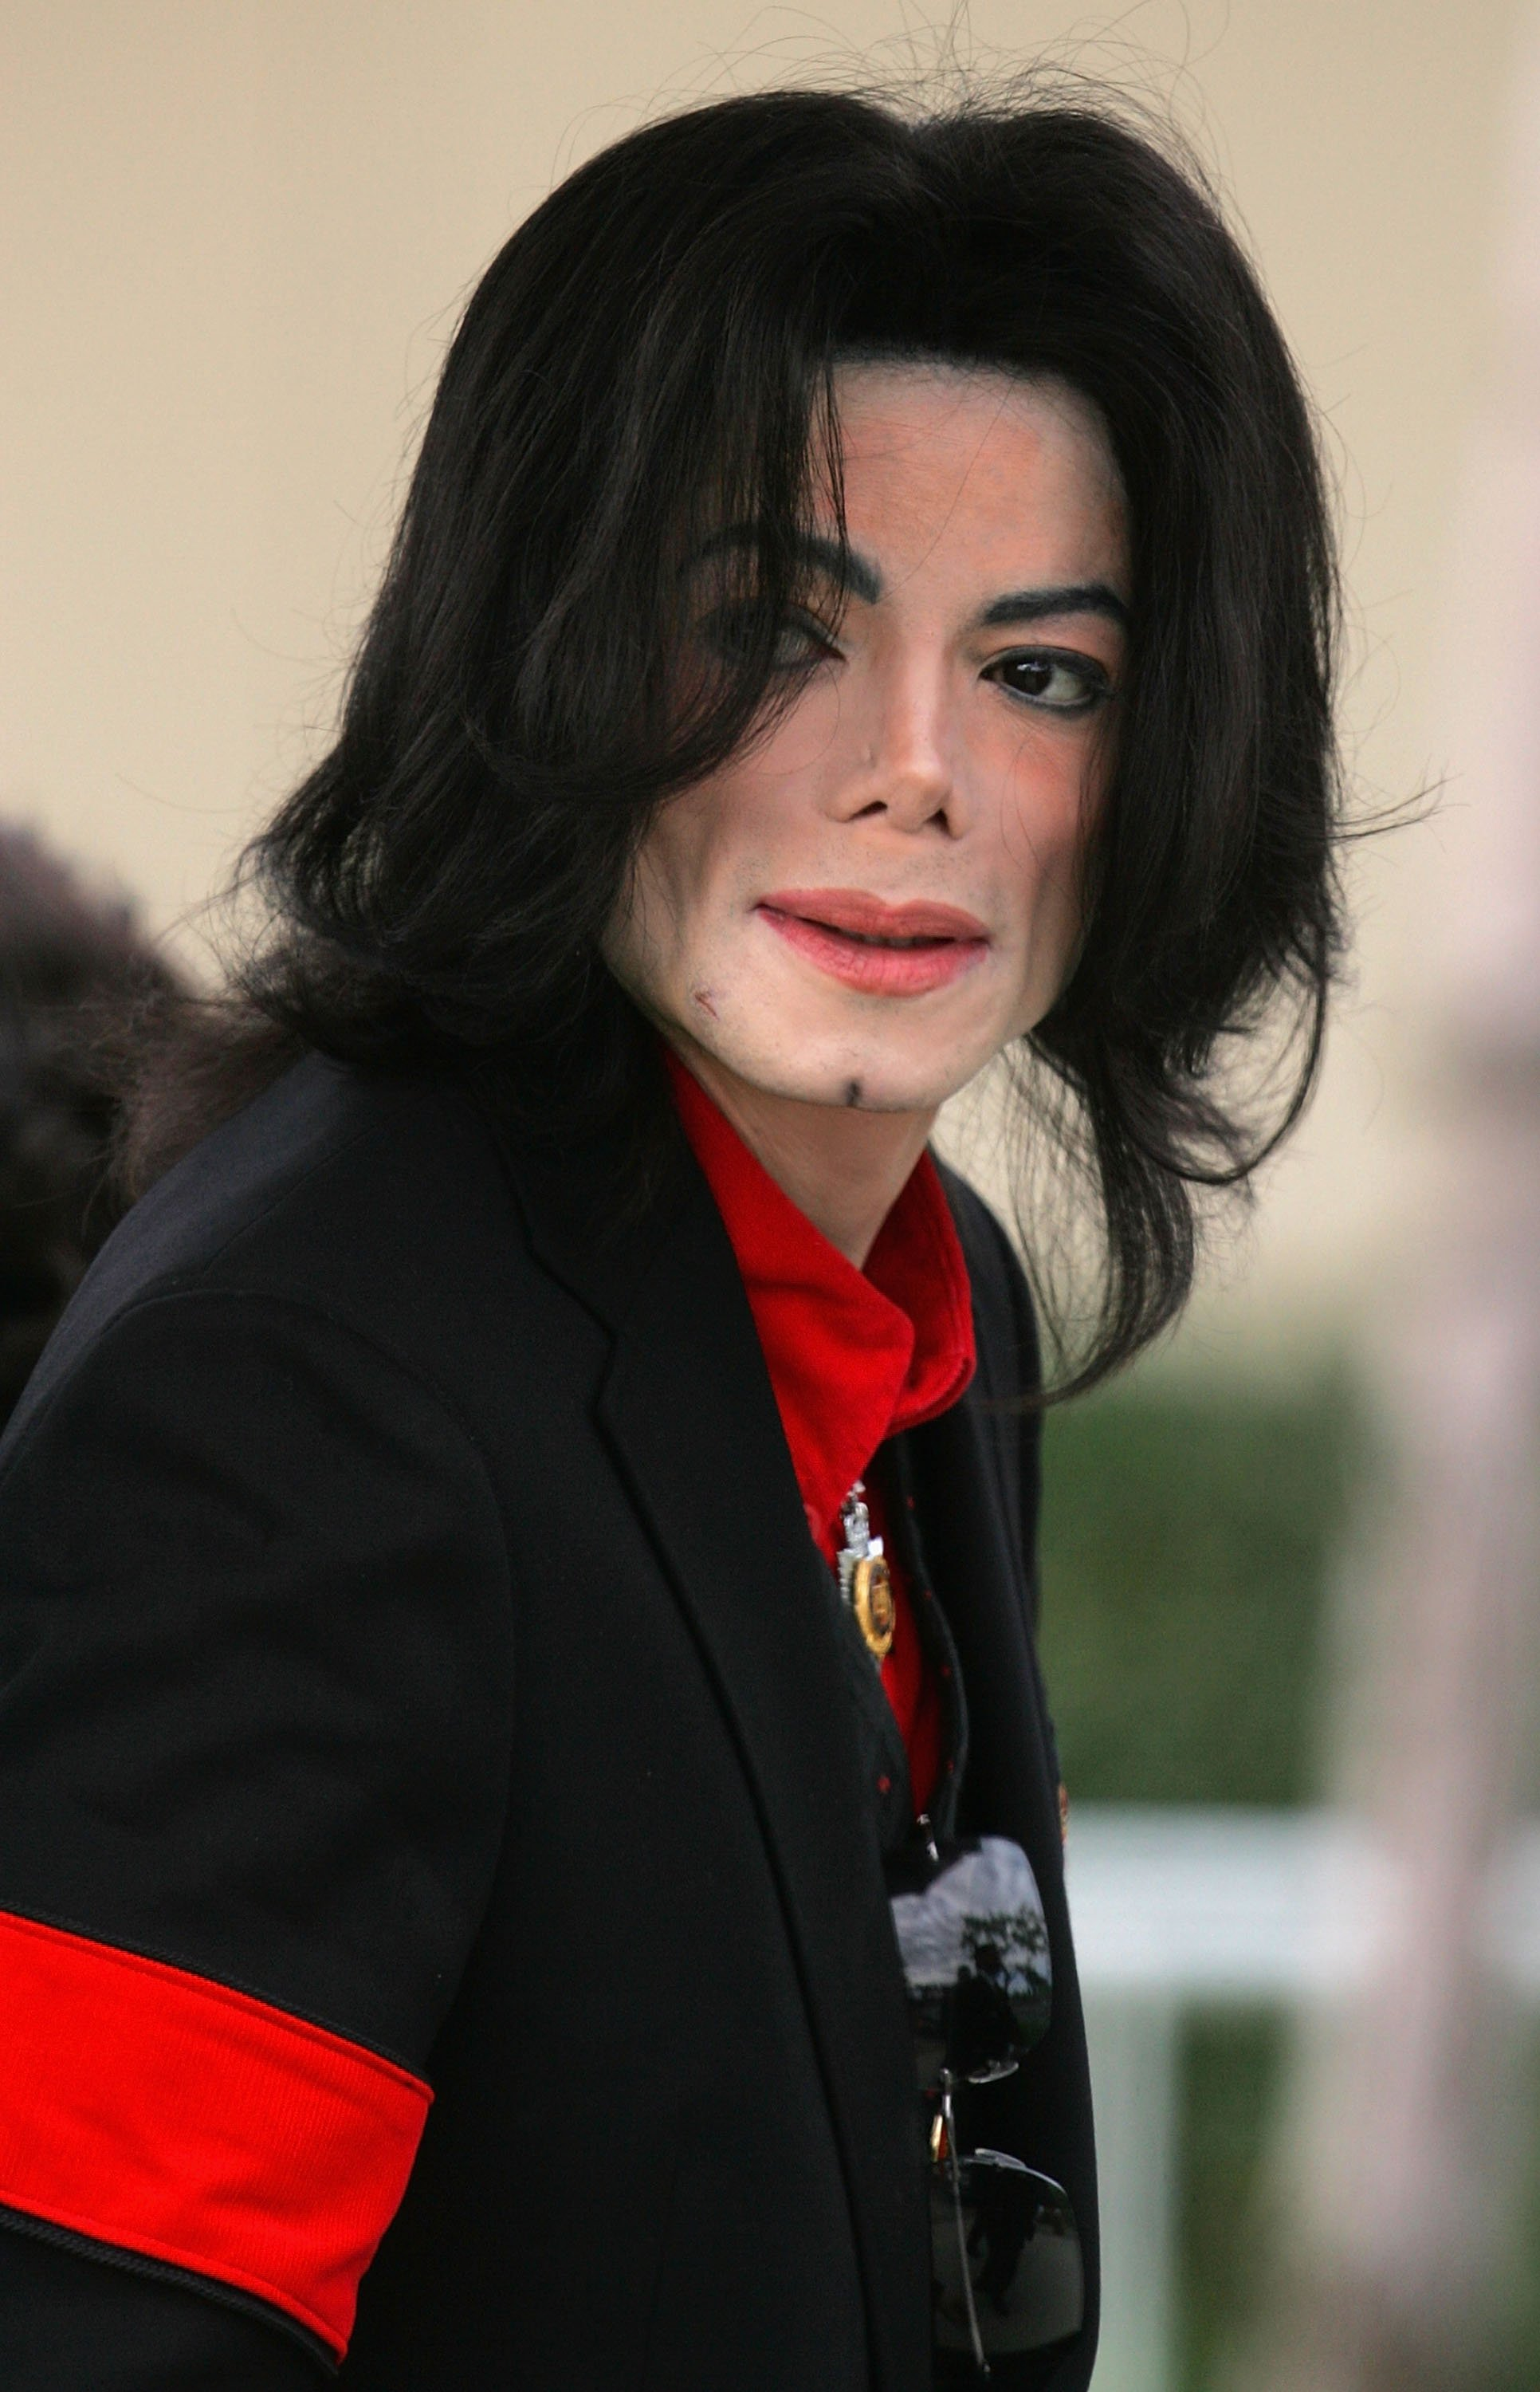 Michael Jackson arriving at the Santa Barbara County Courthouse on the 19th day of his child molestation trial on March 24, 2005. | Source: Getty Images